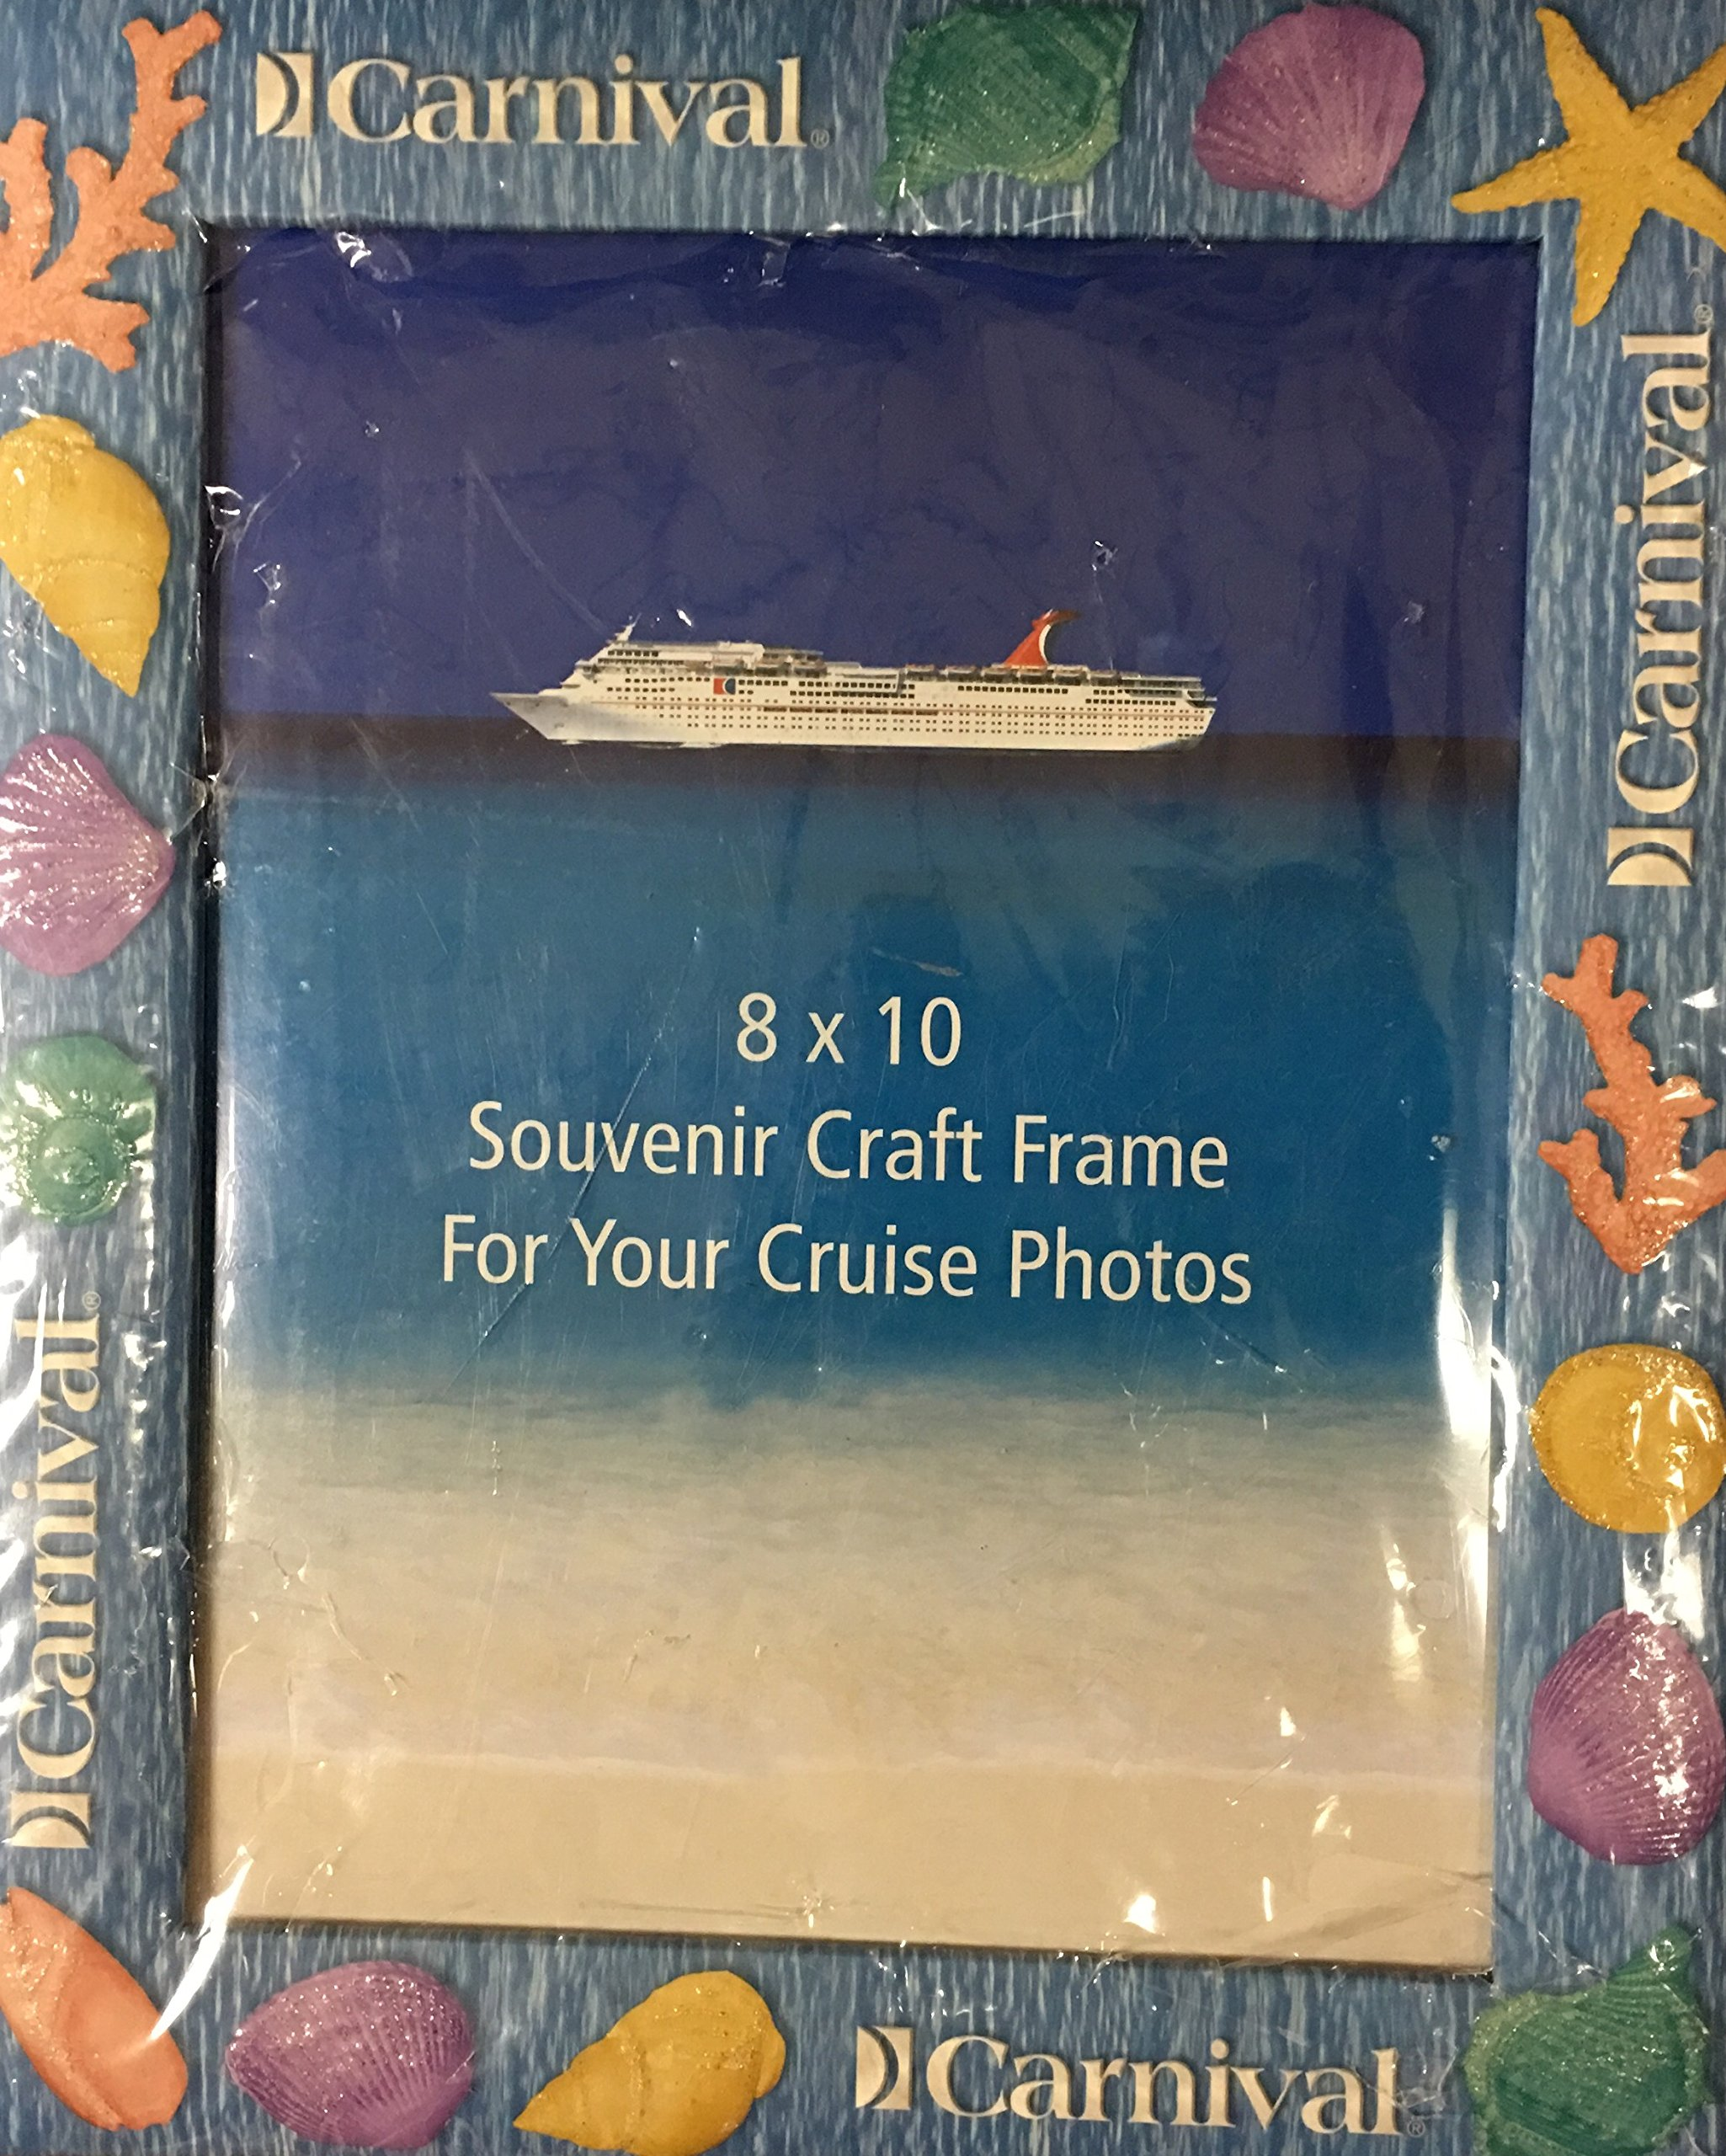 Carnival Cruise 8x10 Souvenir Craft Frame For Your Cruise Photos